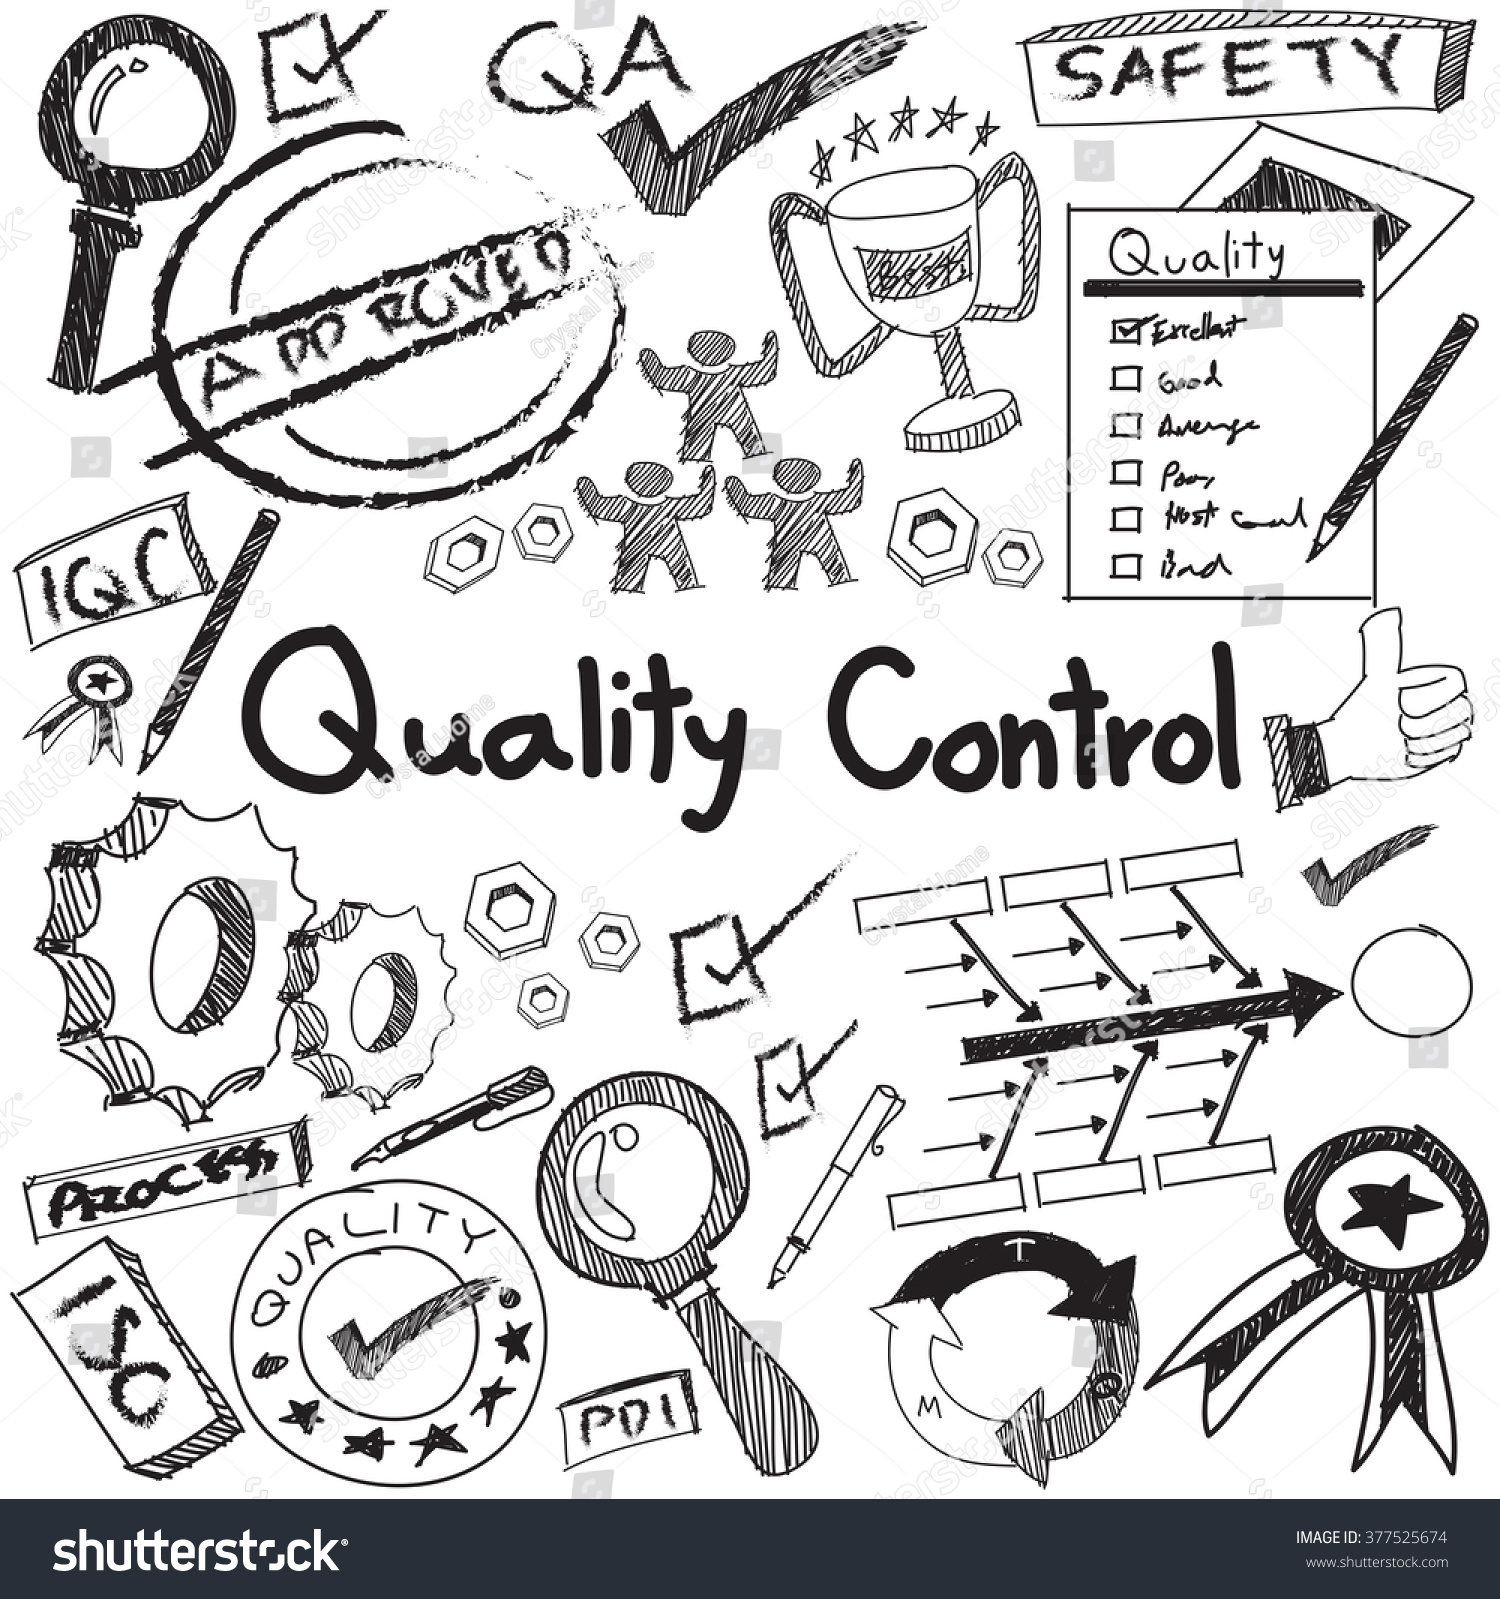 quality control in industries management essay Paper industry for data management throughout the mill complex, from the powerhouse through statistical quality control the quality management system is an effective.